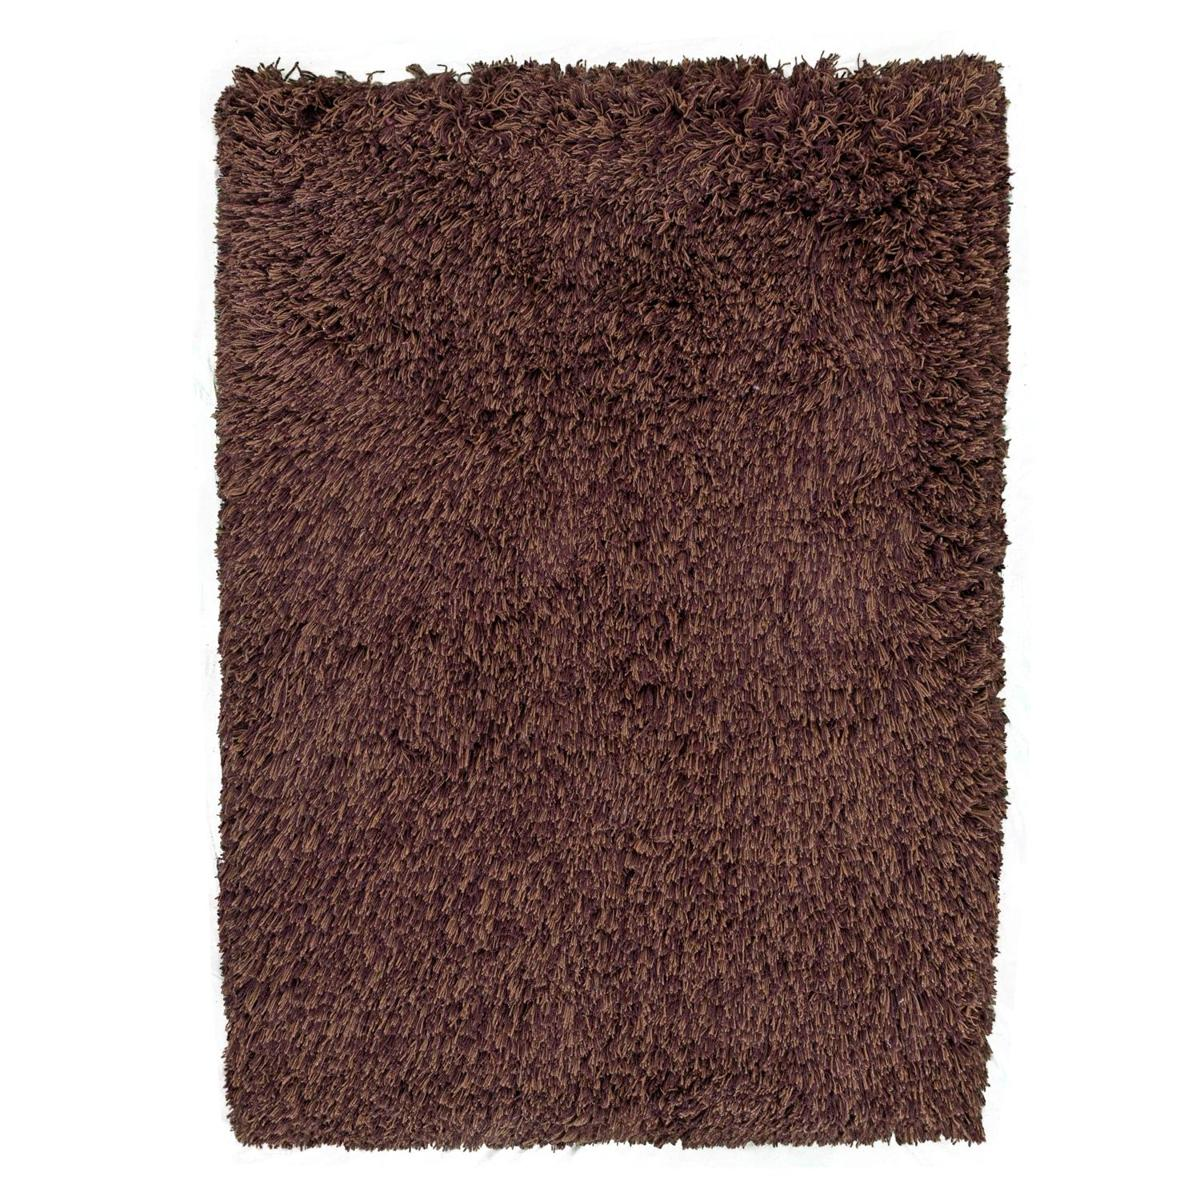 Highlander Shaggy Rug Mixed Brown 110x170cm 1